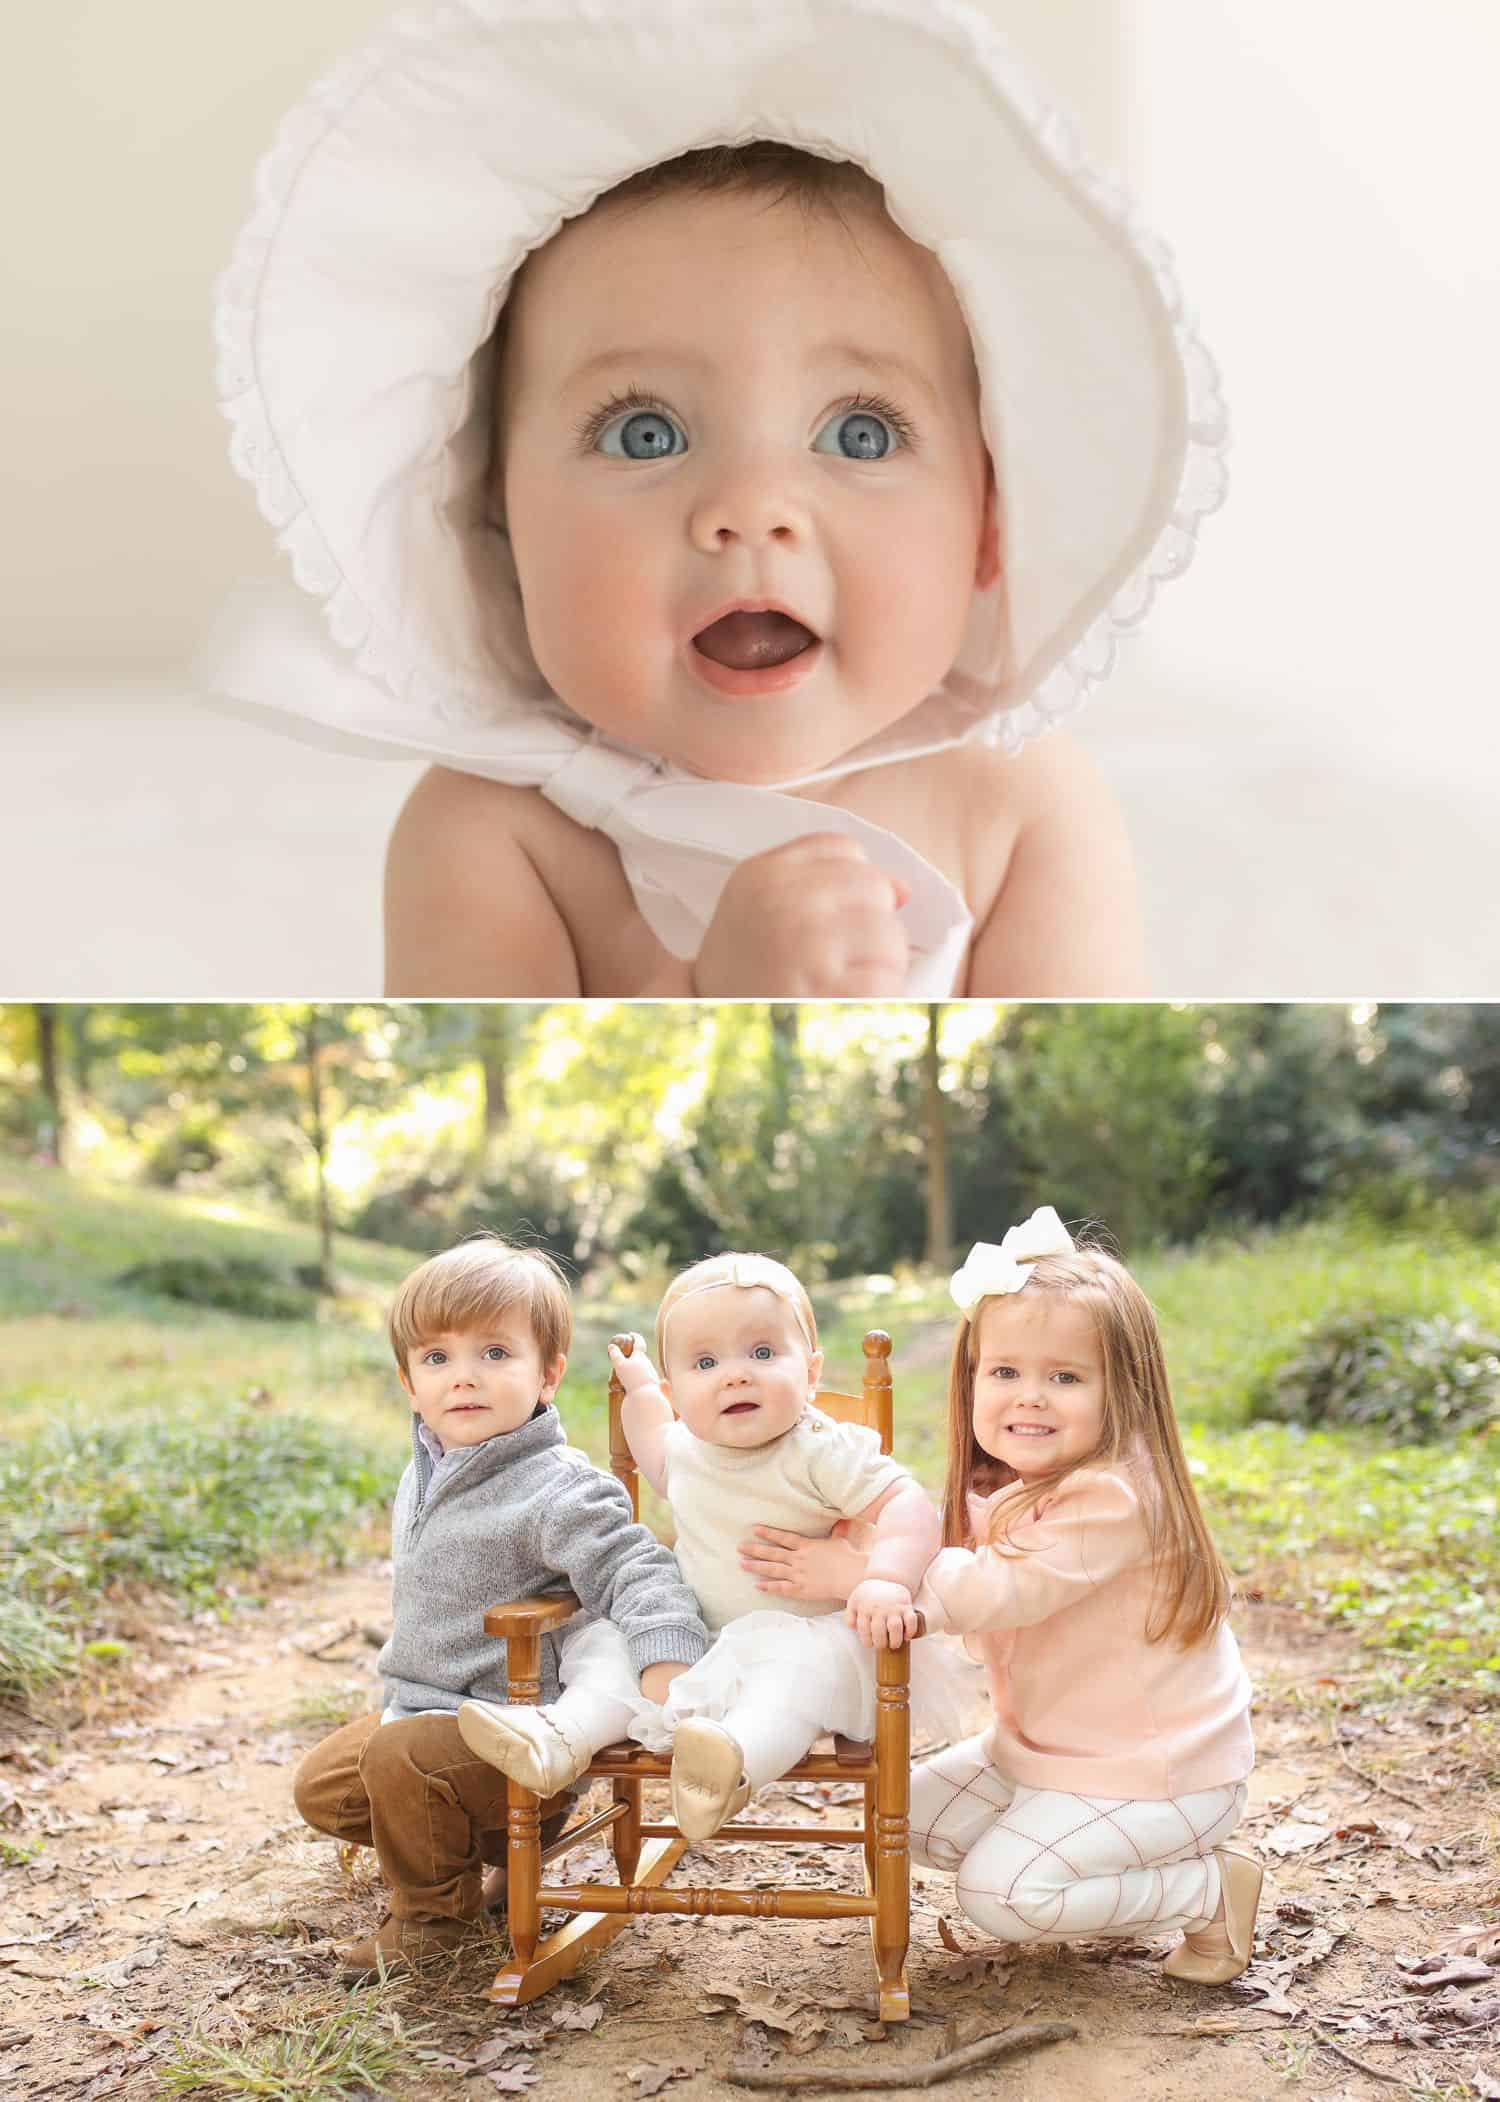 How To Get More Photography Clients? Start Saying No! - Child portraits in pastel by Jenny Perry.